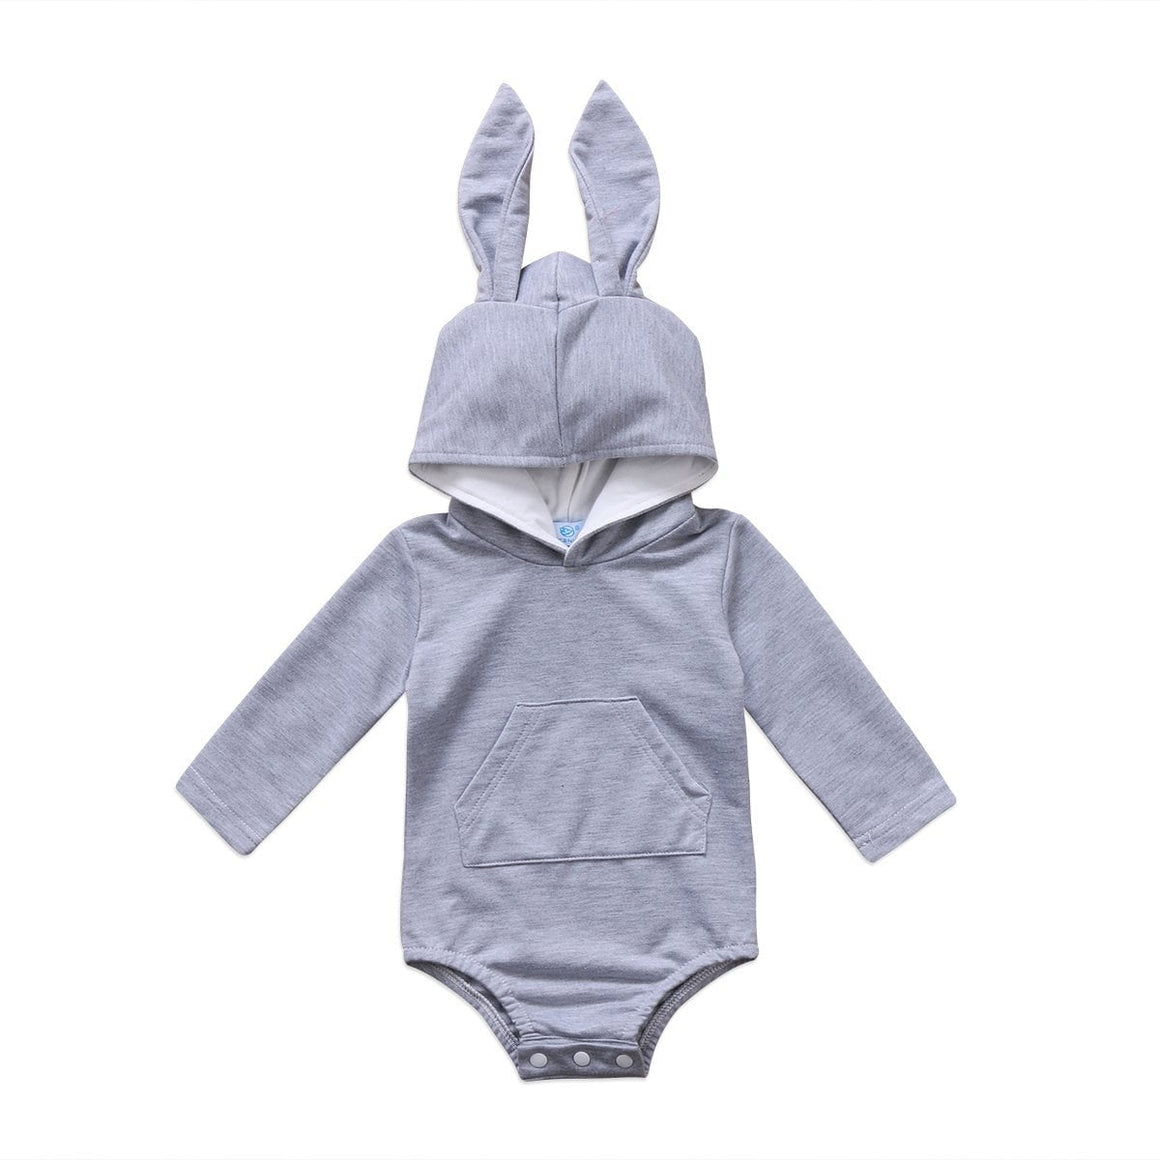 Bunny Long Sleeve Hooded Romper